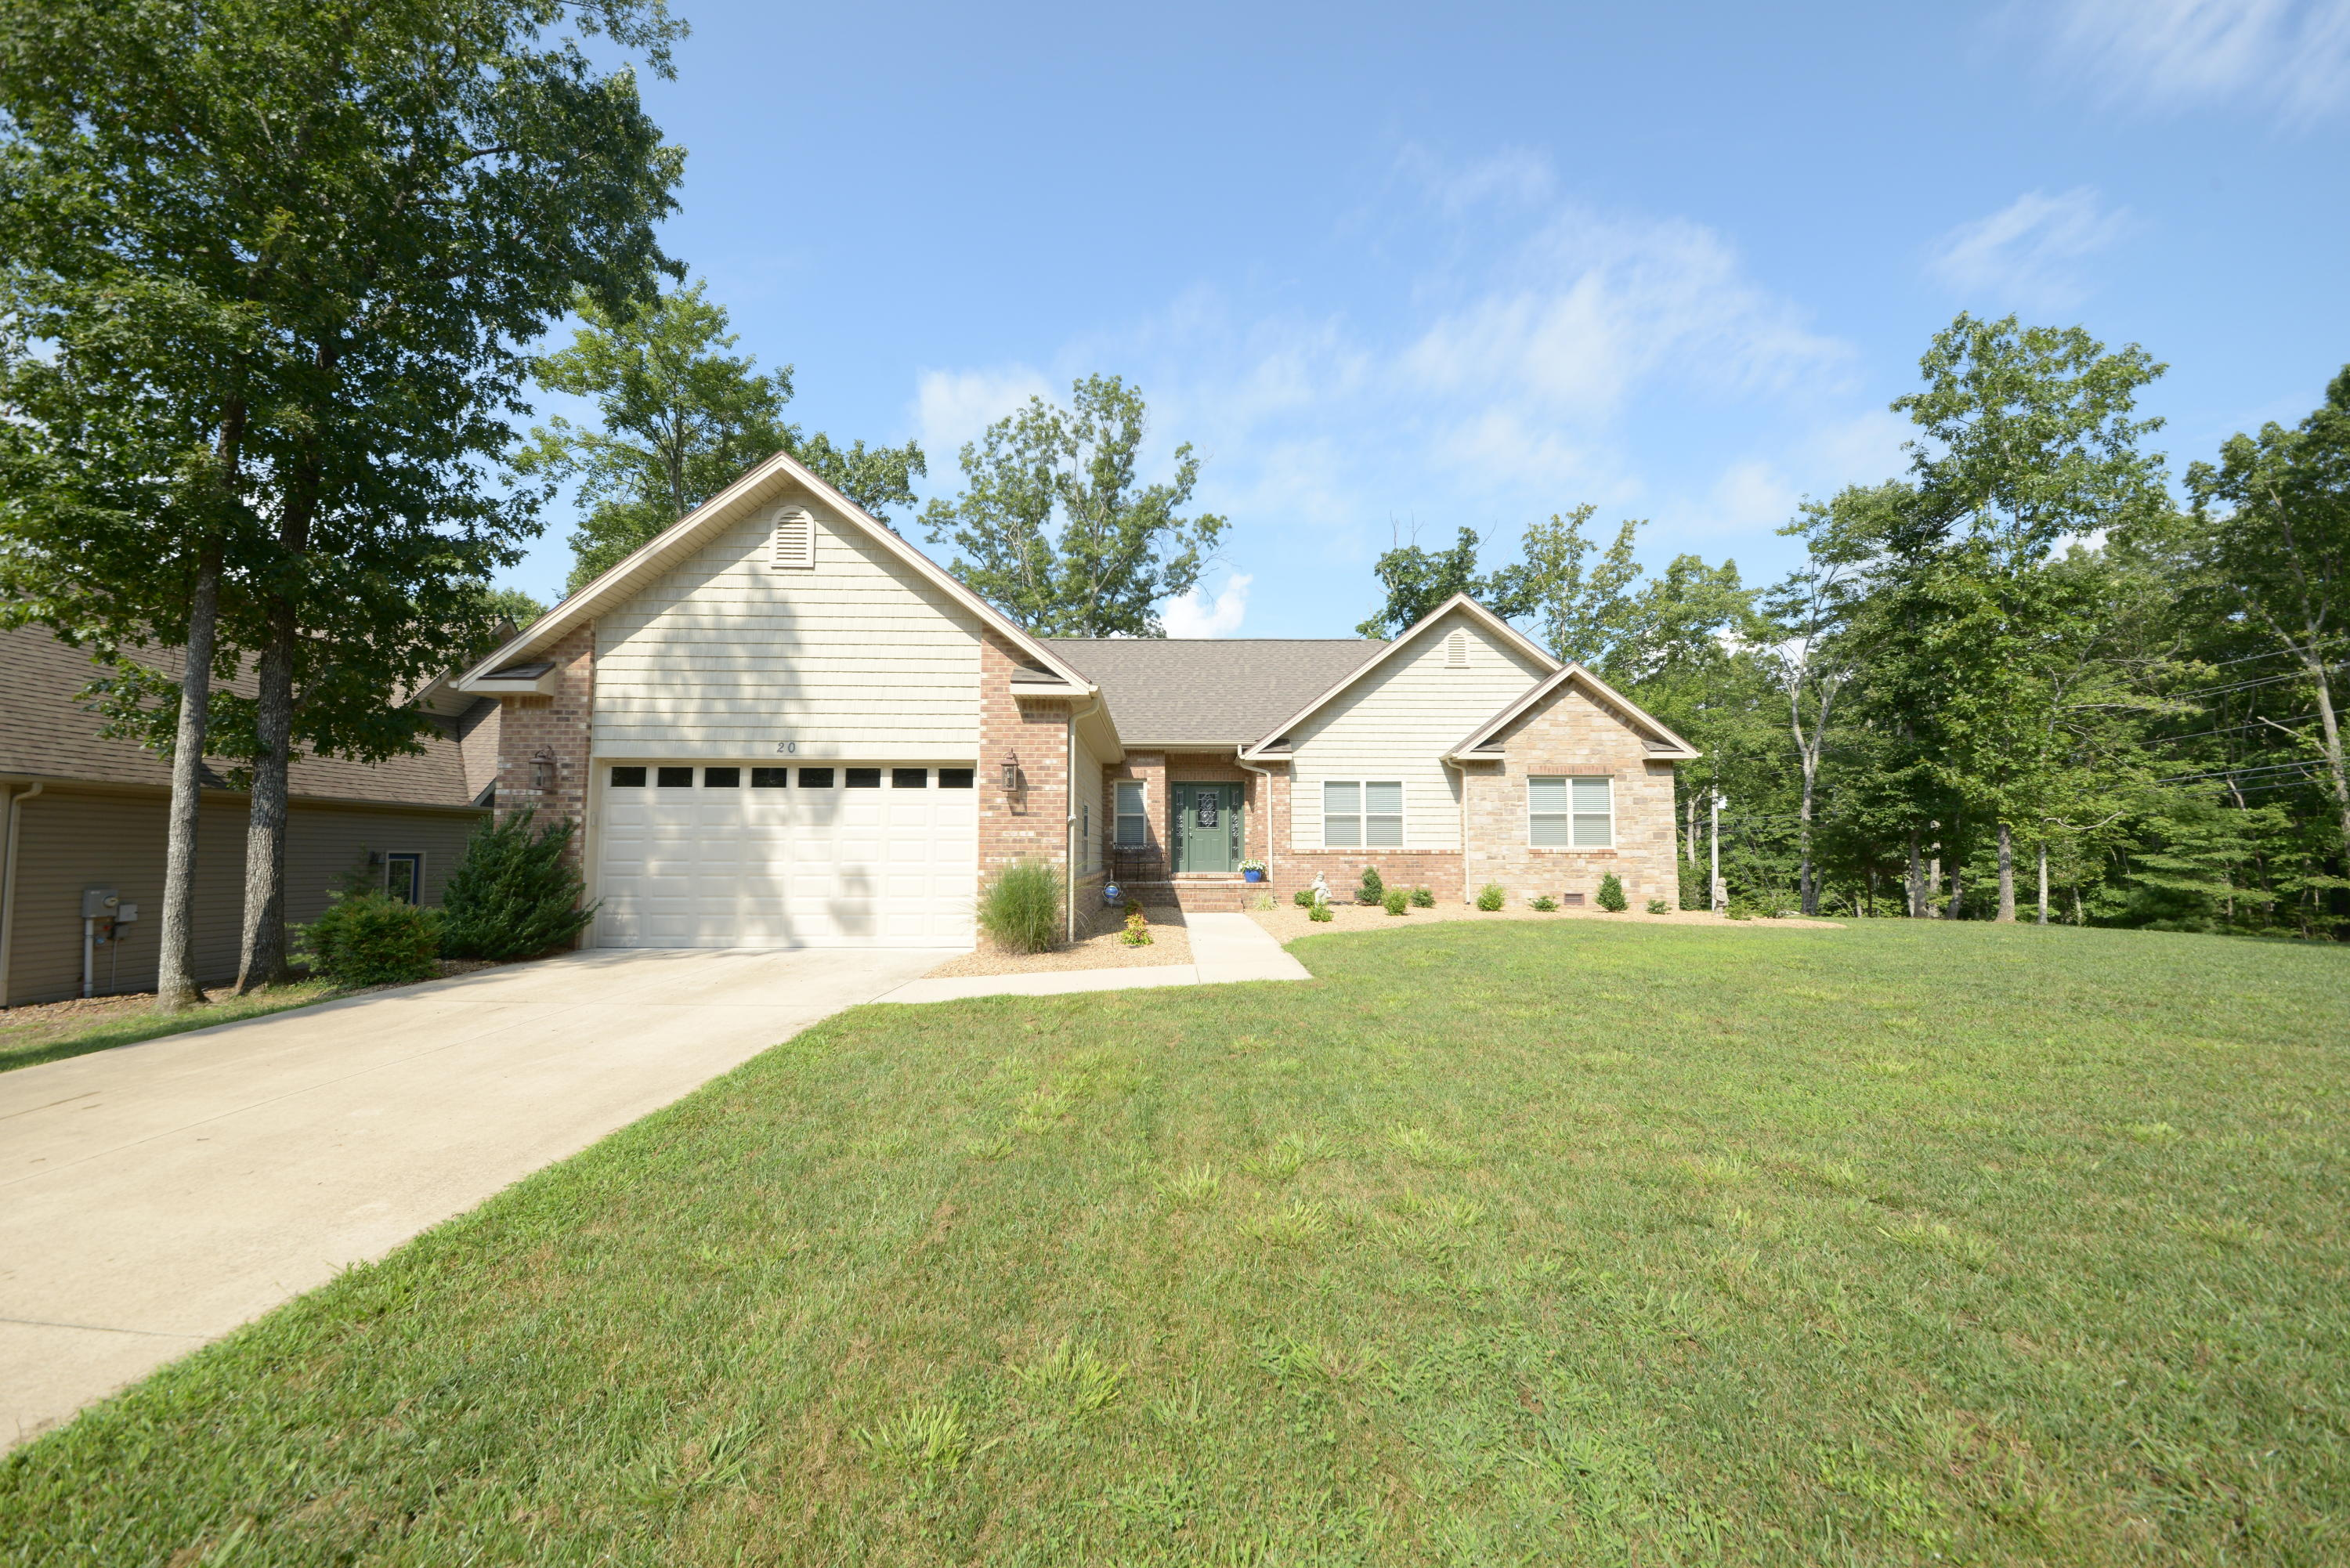 20 Bacham, Fairfield Glade, Tennessee, United States 38558, 3 Bedrooms Bedrooms, ,2 BathroomsBathrooms,Single Family,For Sale,Bacham,1126002